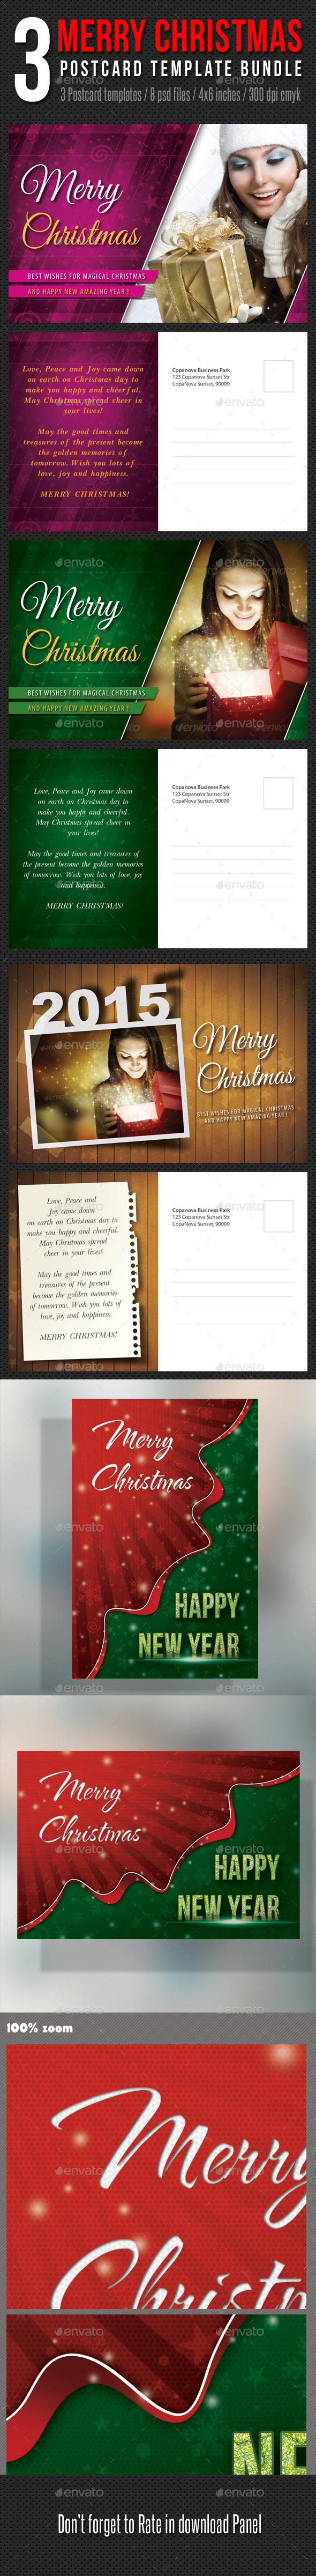 GraphicRiver 3 in 1 Merry Christmas Postcard Template Bundle 9796864